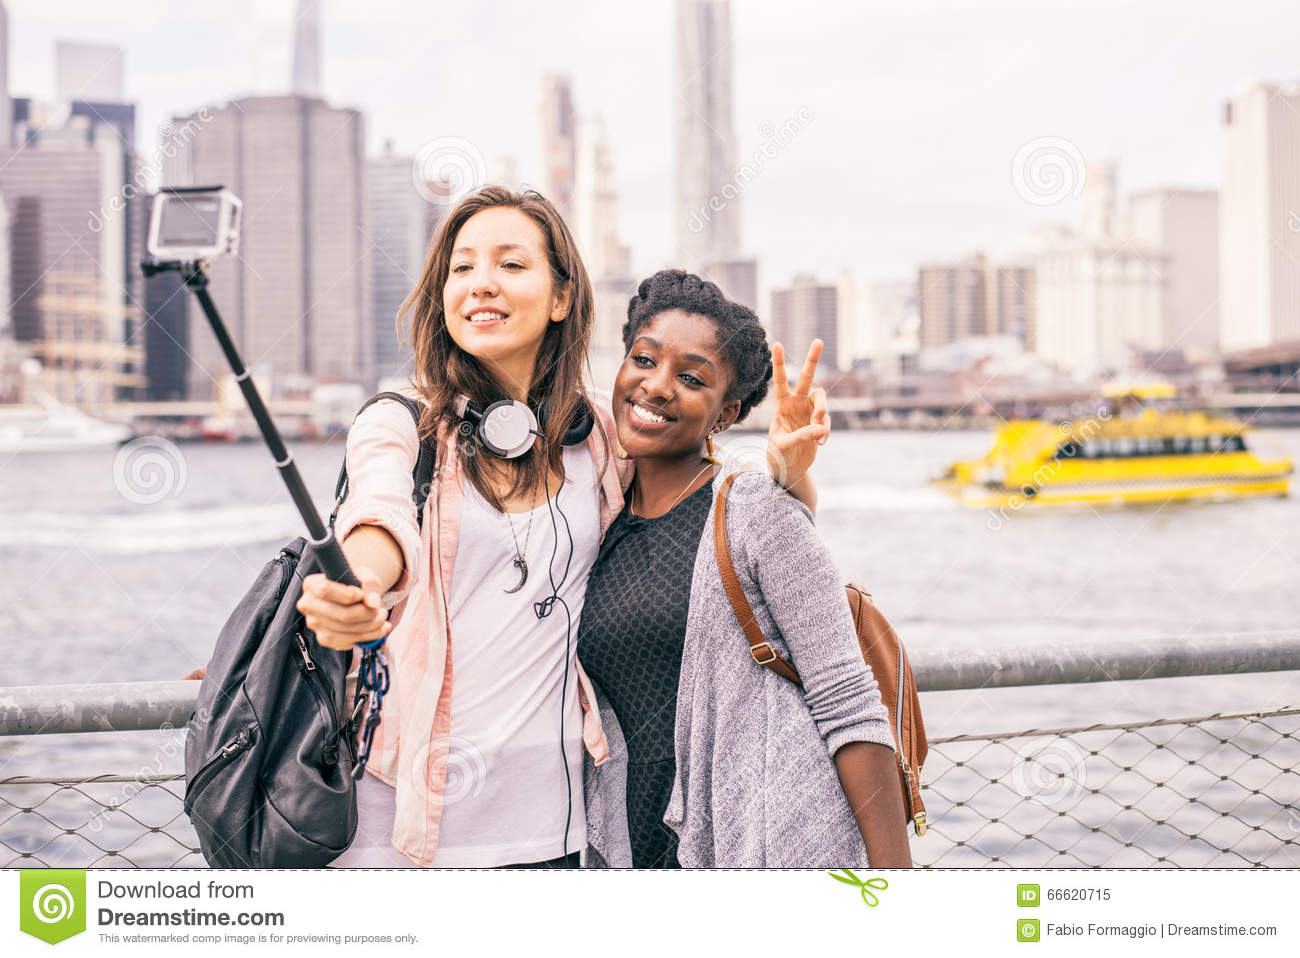 turisti a new york immagine stock immagine di people